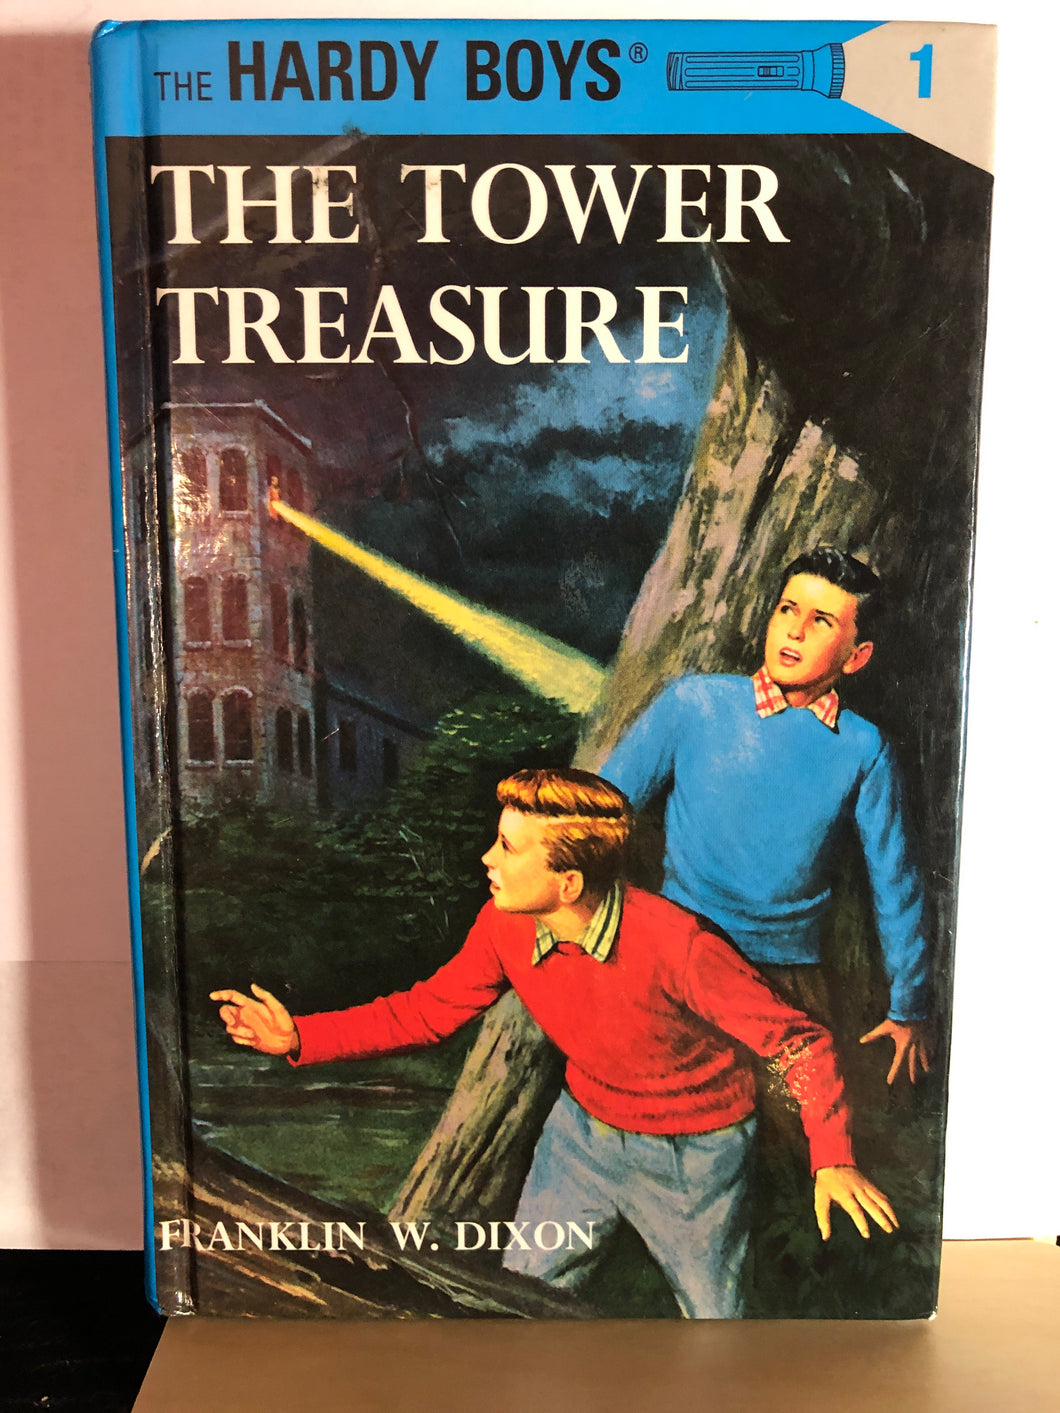 The Tower Treasure    by Franklin W. Dixon     (The Hardy Boys #1)   Hardcover